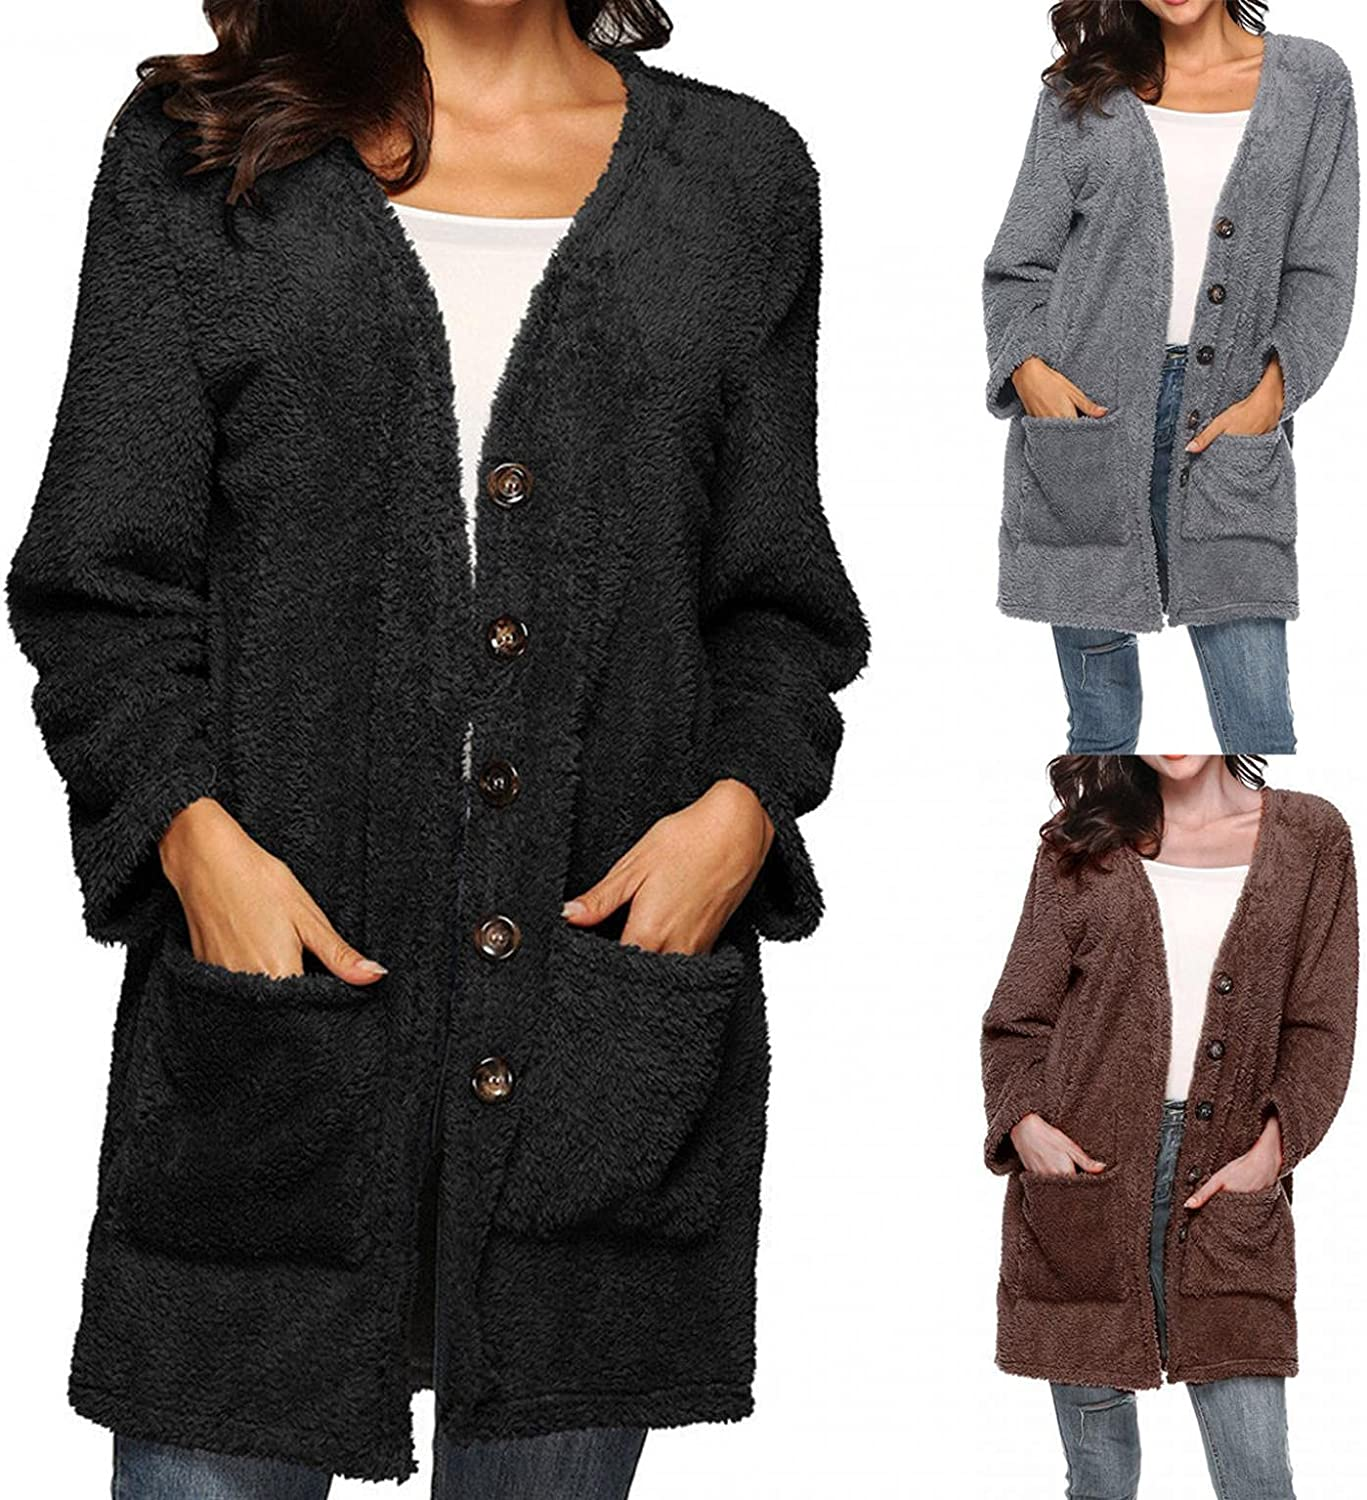 INESVER Womens Button Down Long Sleeve Cardigan Fleece Fuzzy Warm Jacket Tops Solid Color Open Front Cardigan